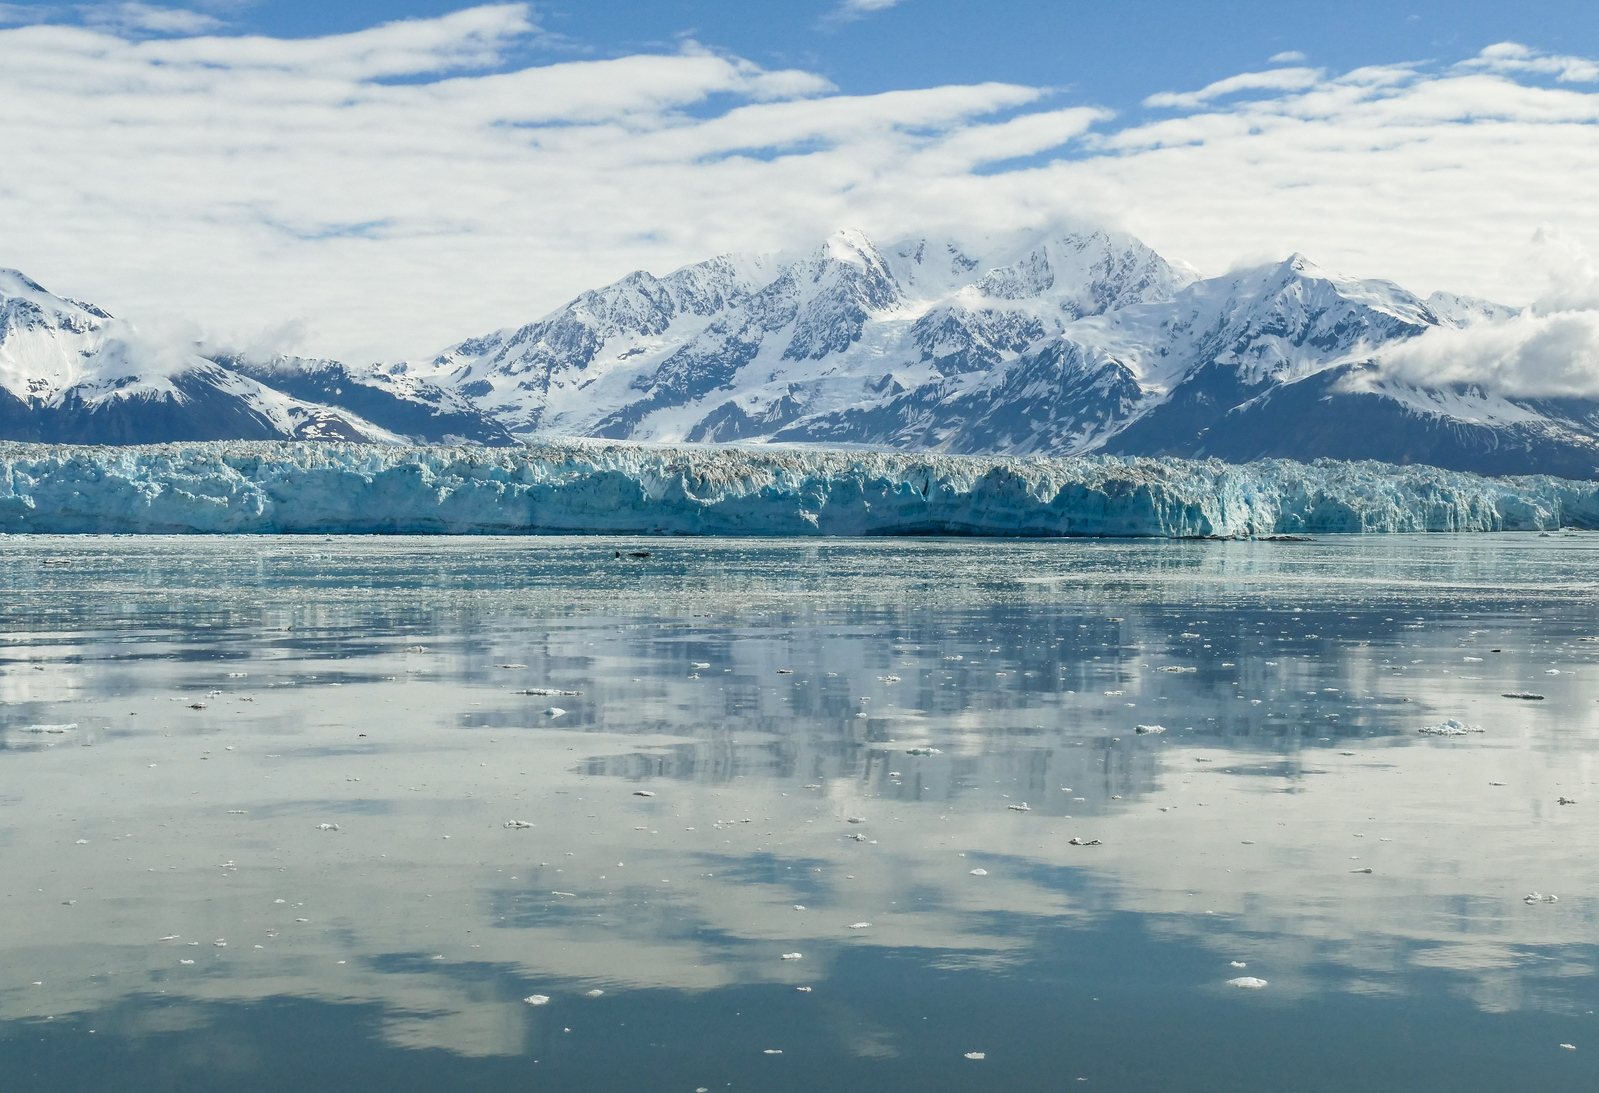 Hubbard Glacier reflected in the waters of Disenchantment Bay, Alaska.